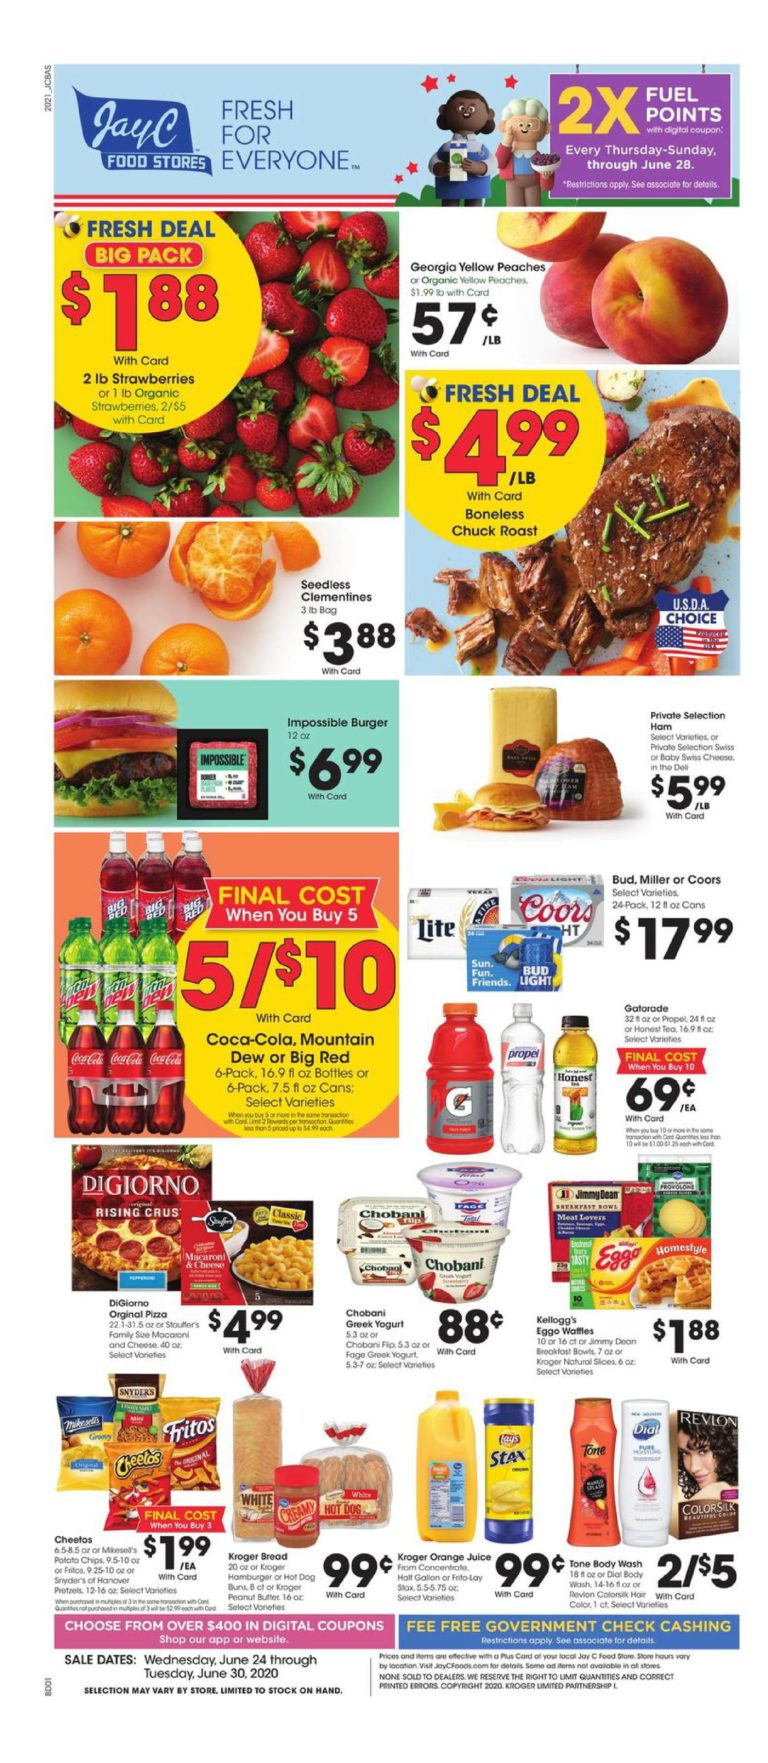 Jay c foods weekly ad ( June 24 - June 30, 2020 ) | Jay c foods In Store Ads